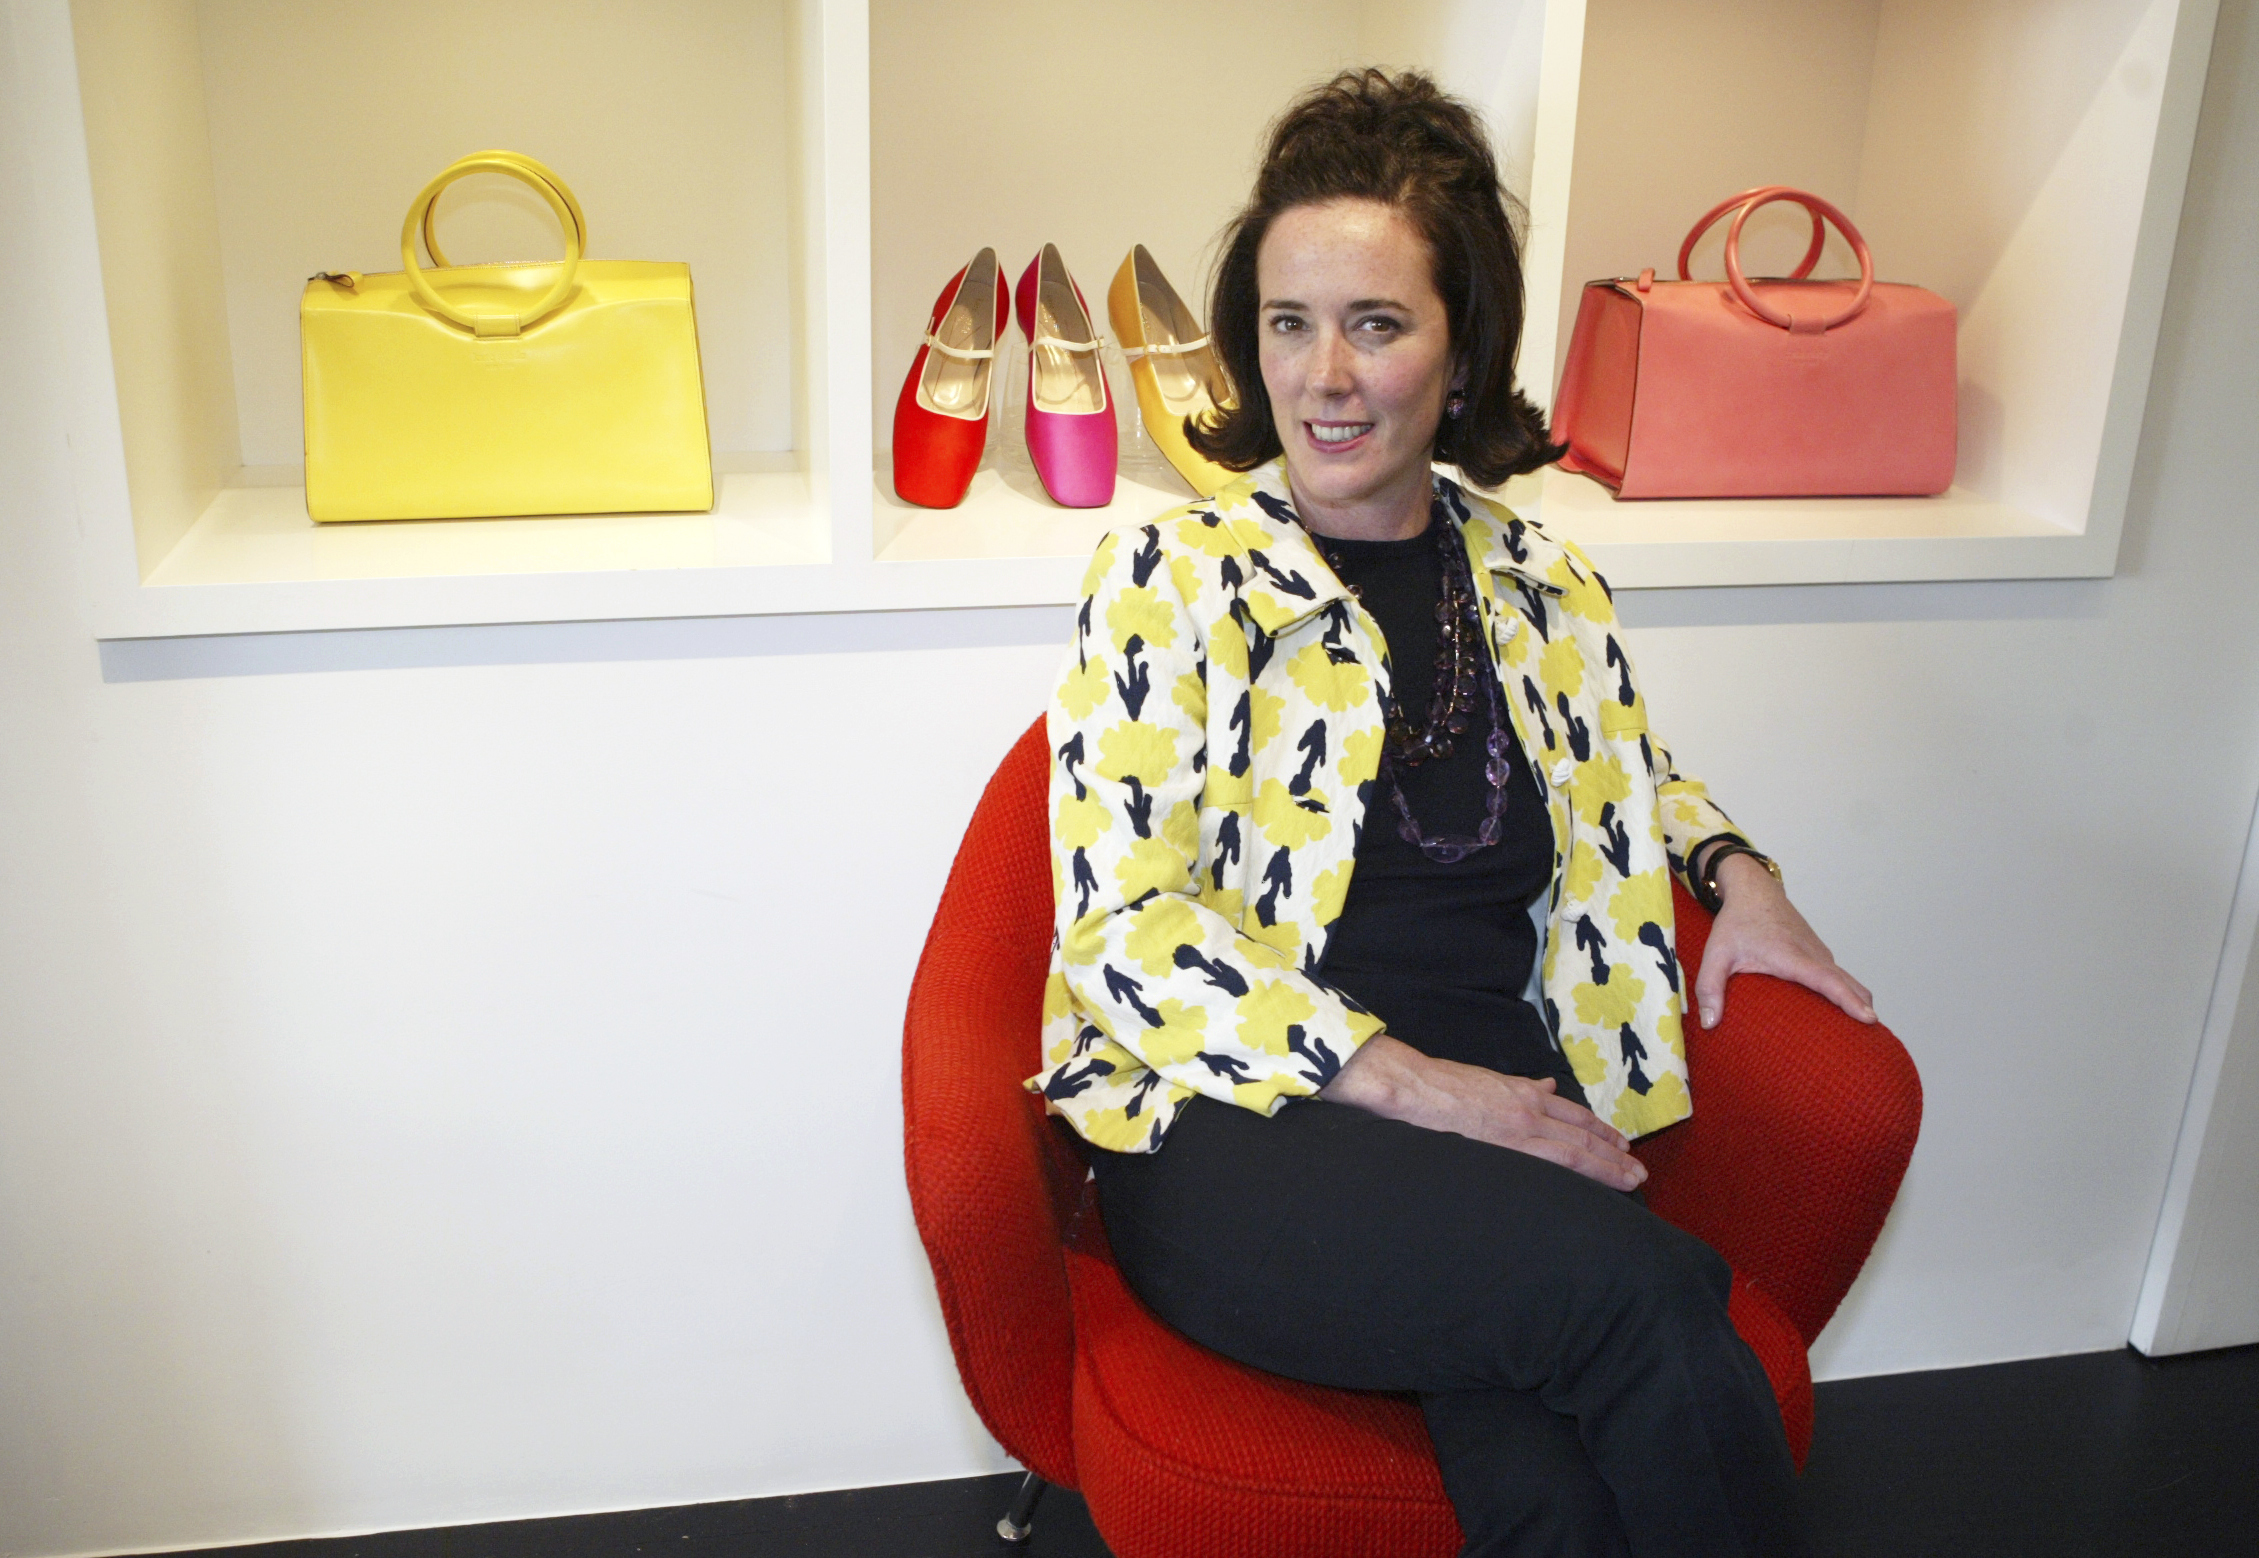 "<div class=""meta image-caption""><div class=""origin-logo origin-image ap""><span>AP</span></div><span class=""caption-text"">This May 13, 2004 photo shows designer Kate Spade posing among handbags and shoes from her collection in New York. (AP Photo/Bebeto Matthews, File) (AP)</span></div>"